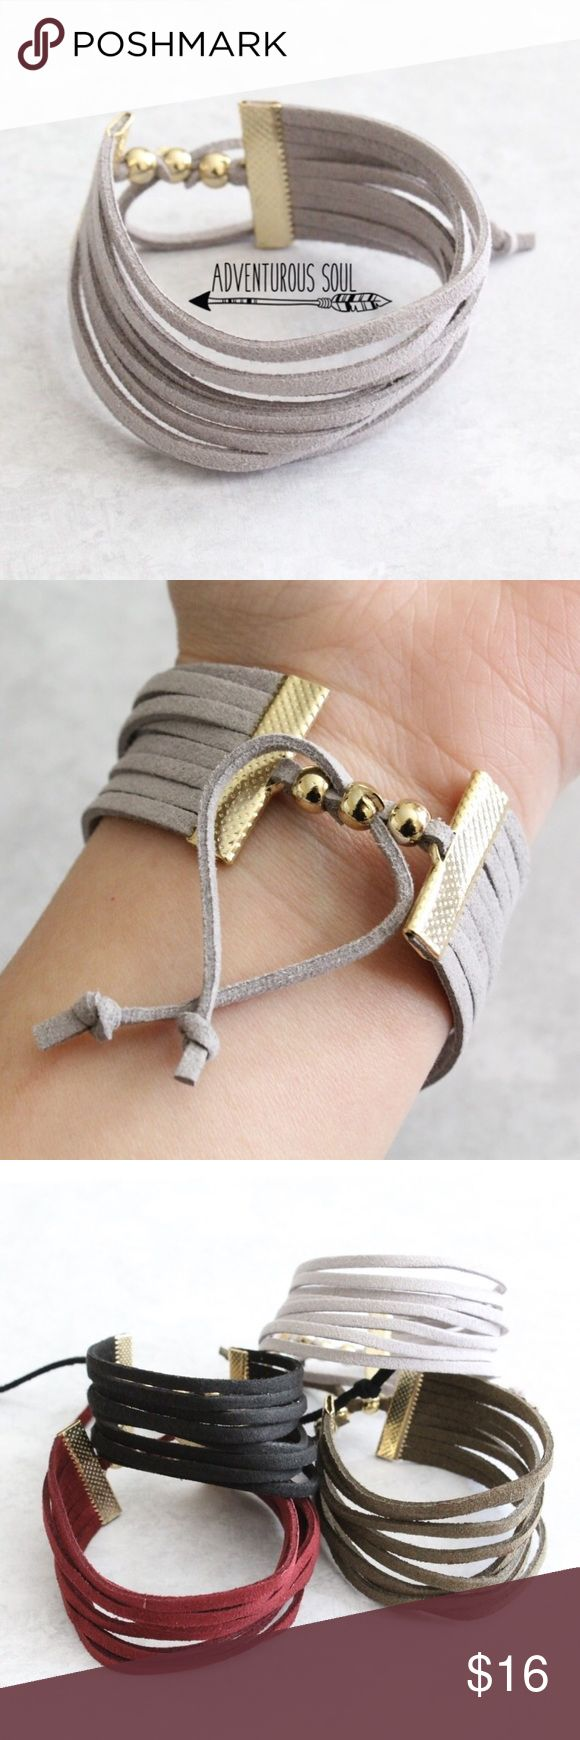 Gray Faux Suede Adjustable Multilayered Bracelet SUPER CUTE & TRENDY FAUX SUEDE BRACELET. ADJUSTABLE. GRAY. AS30012 Jewelry Bracelets